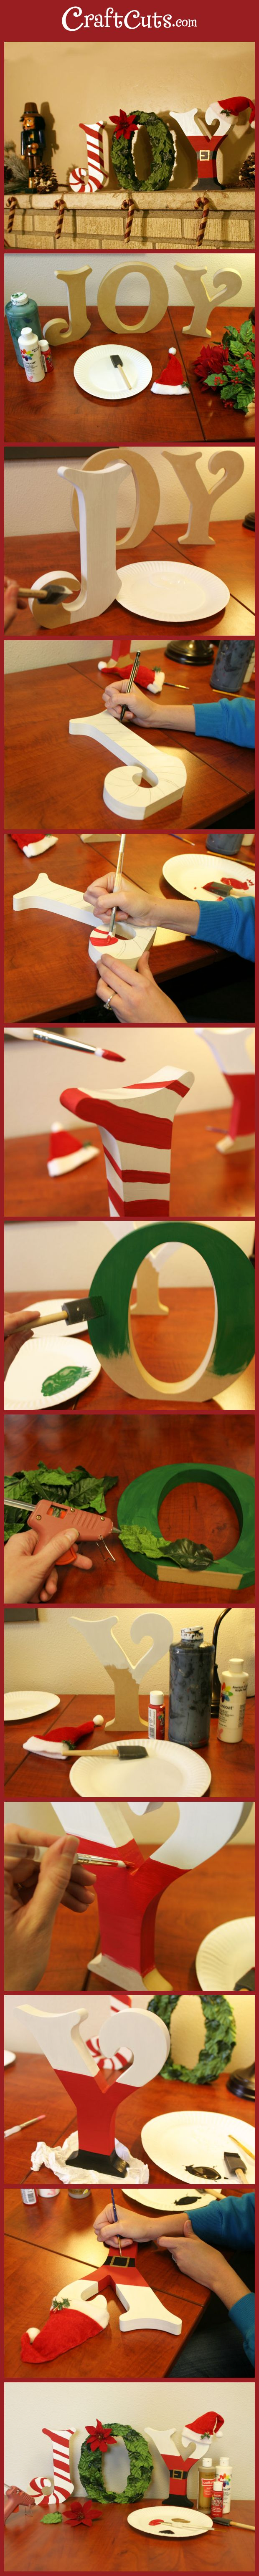 Use standing wooden letters to make JOY Christmas decoration | CraftCuts.com